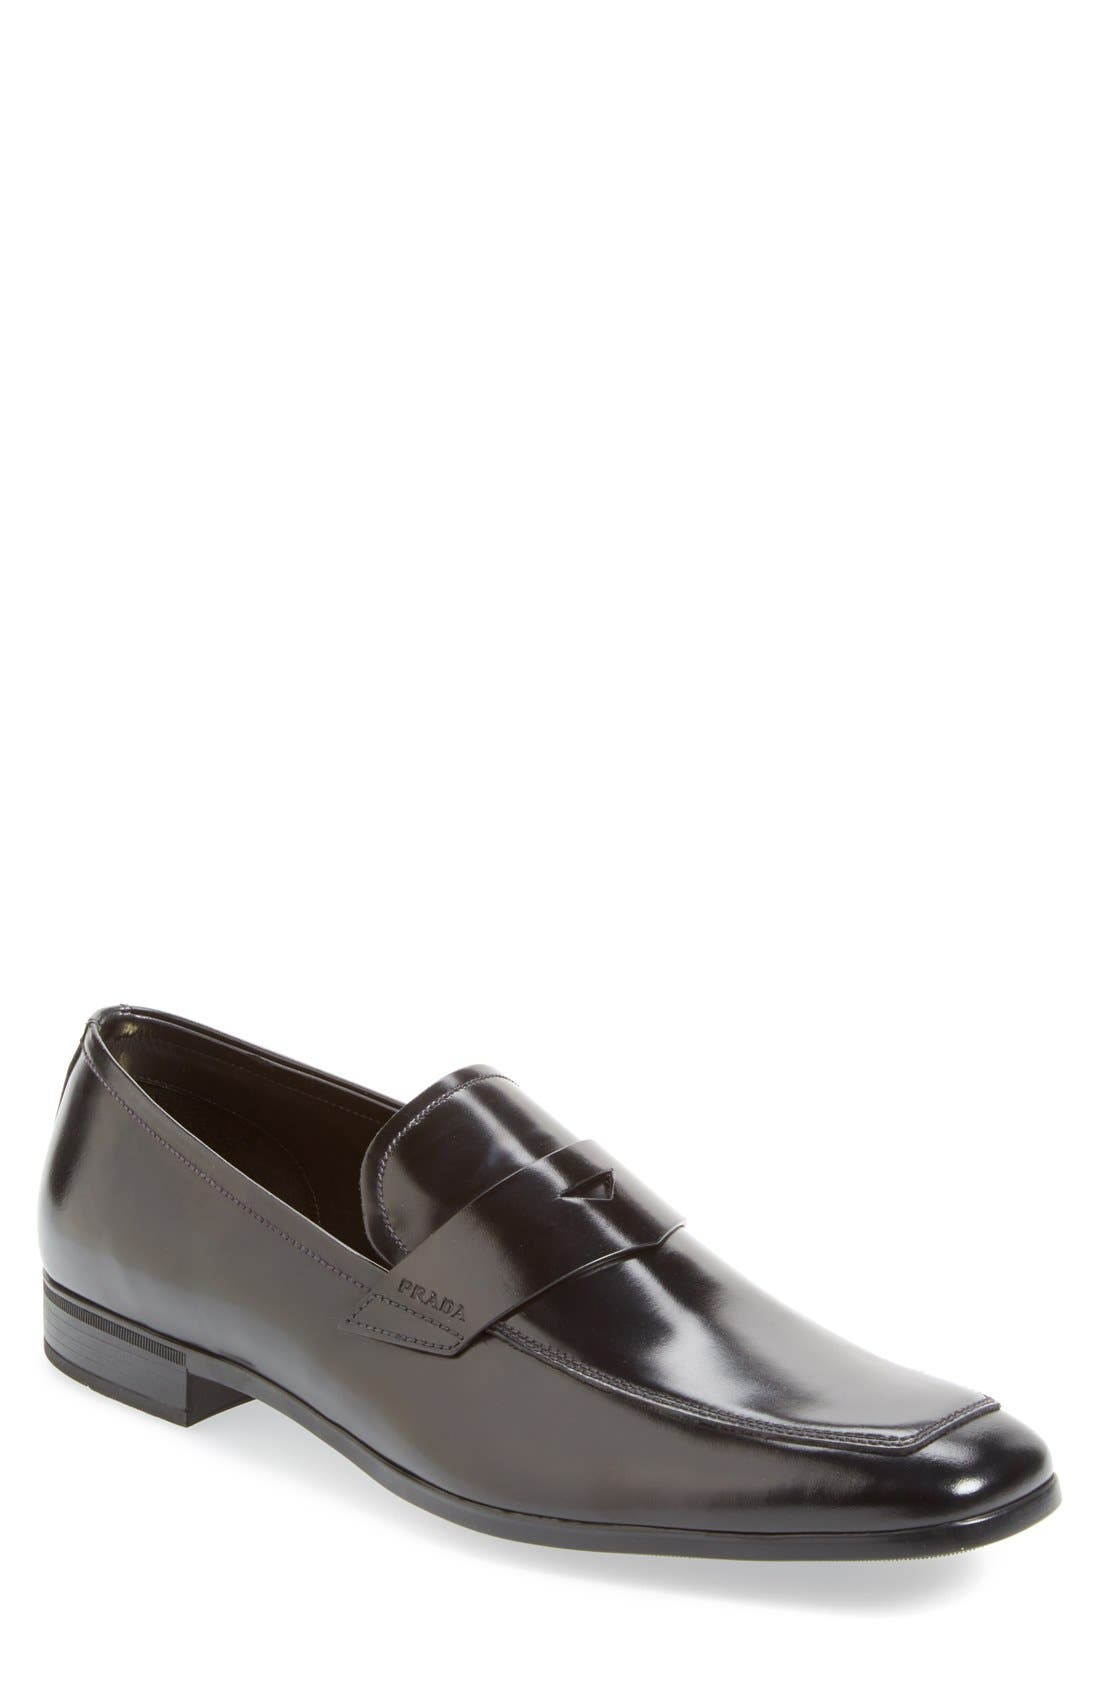 Spazzolato Penny Loafer, Main, color, 001